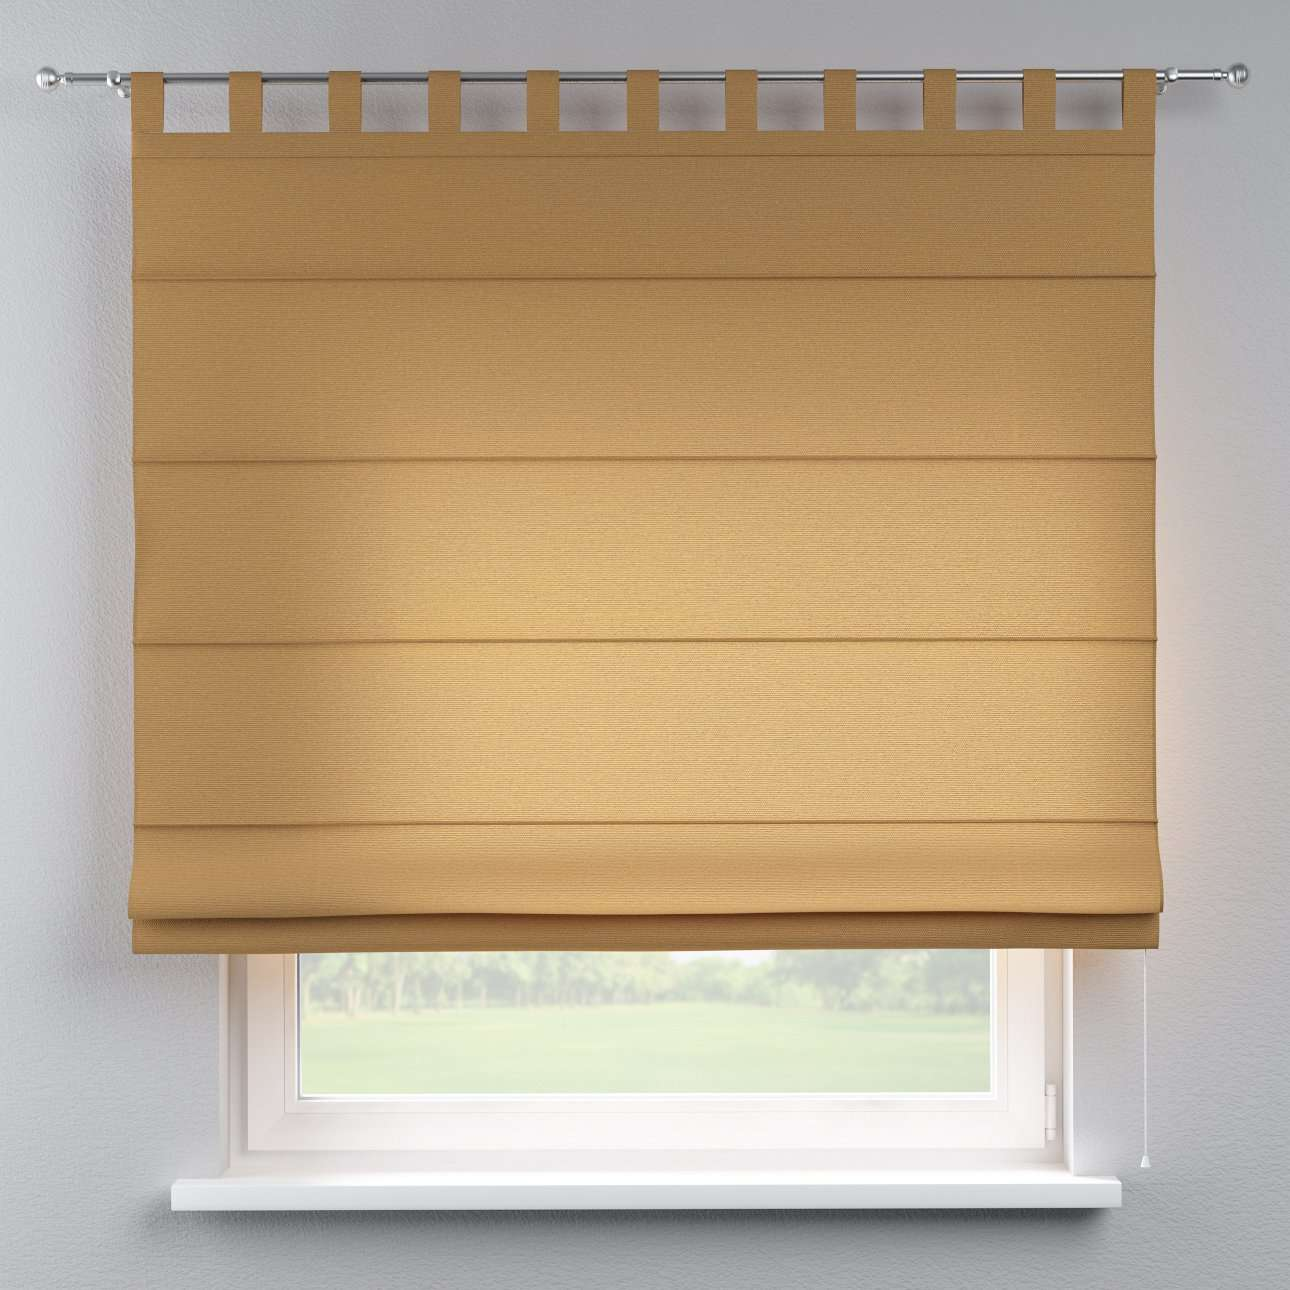 Verona tab top roman blind 80 x 170 cm (31.5 x 67 inch) in collection Loneta , fabric: 133-12